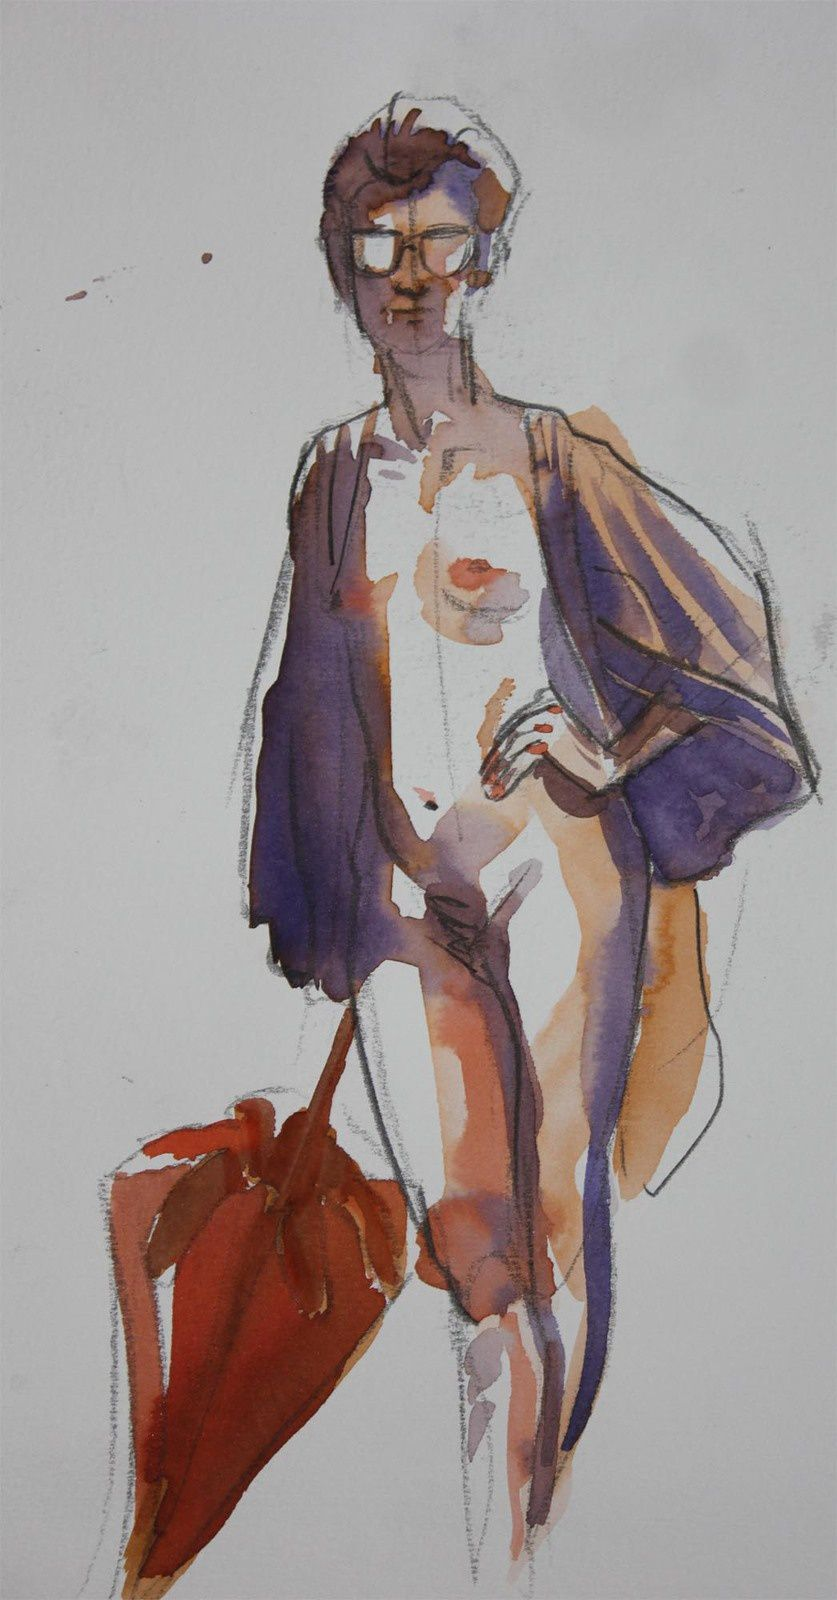 Modèle Vivant : pose de 10 minutes à l'encre aquarelle / Life-drawing : required time of 10 minutes, with brillant watercolour